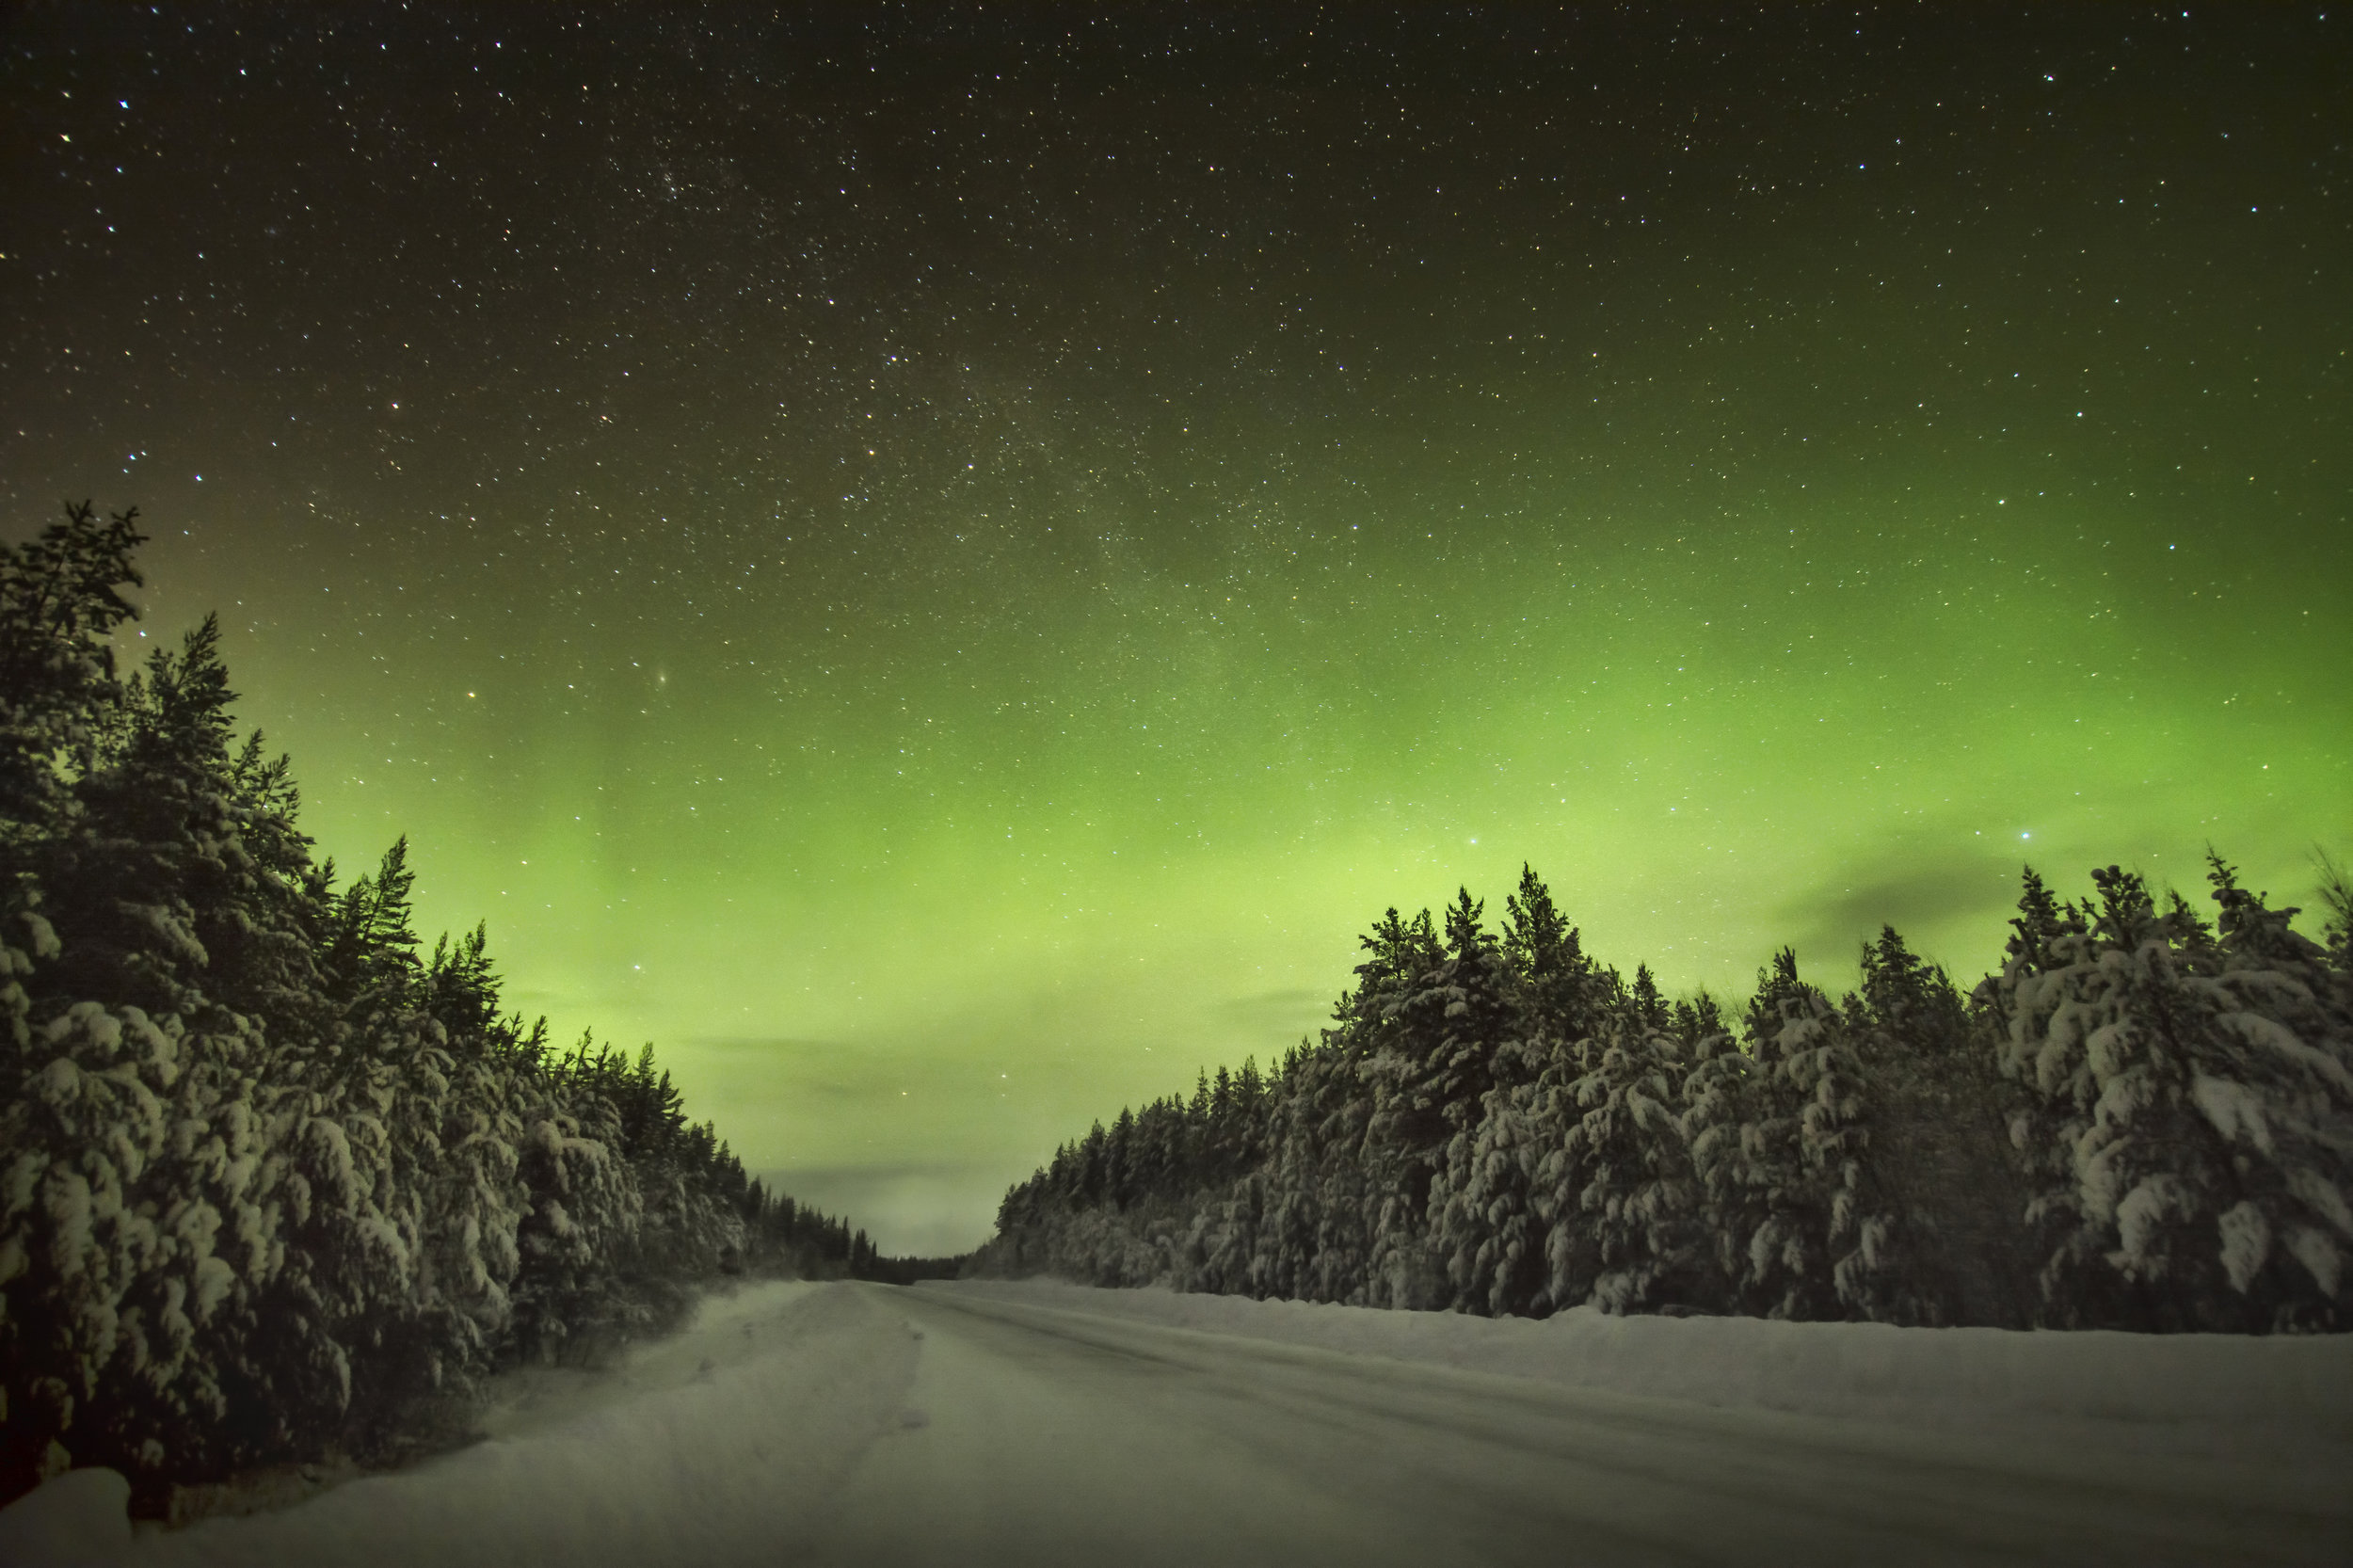 Green Northern Lights over a forest road. Photo: Paul Lampard